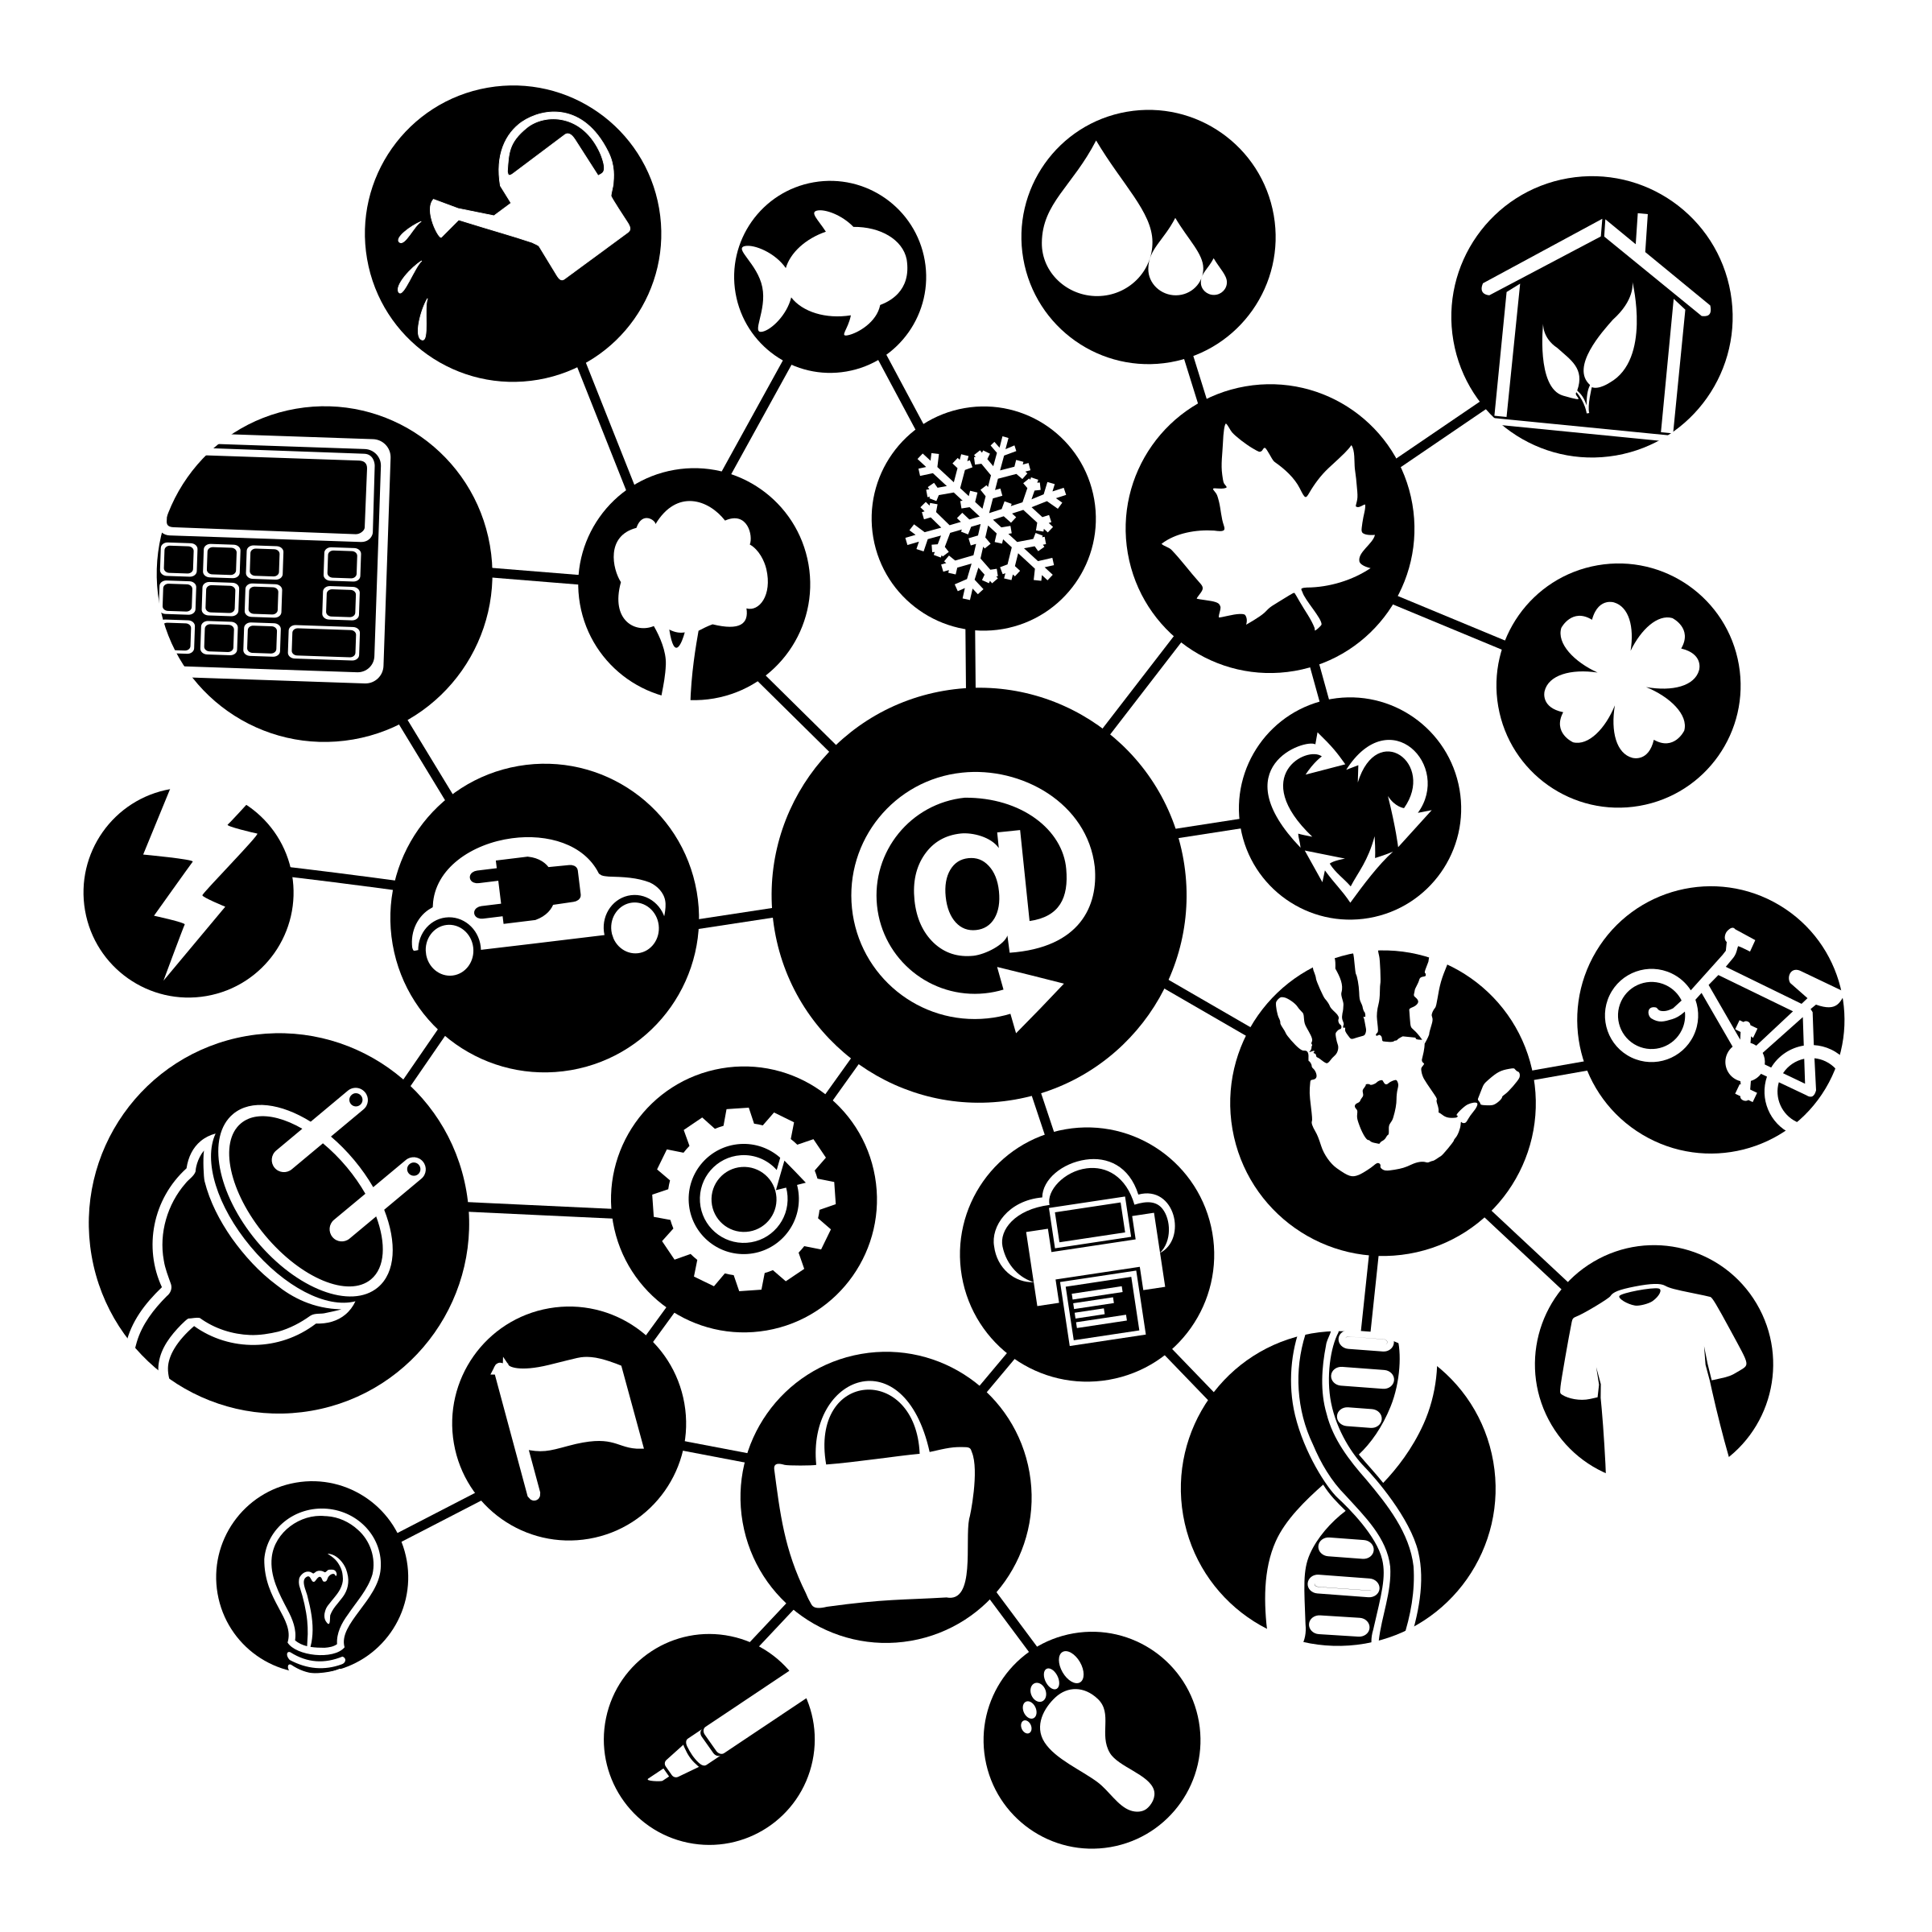 jpg freeuse library Web clipart black and white.  collection of internet